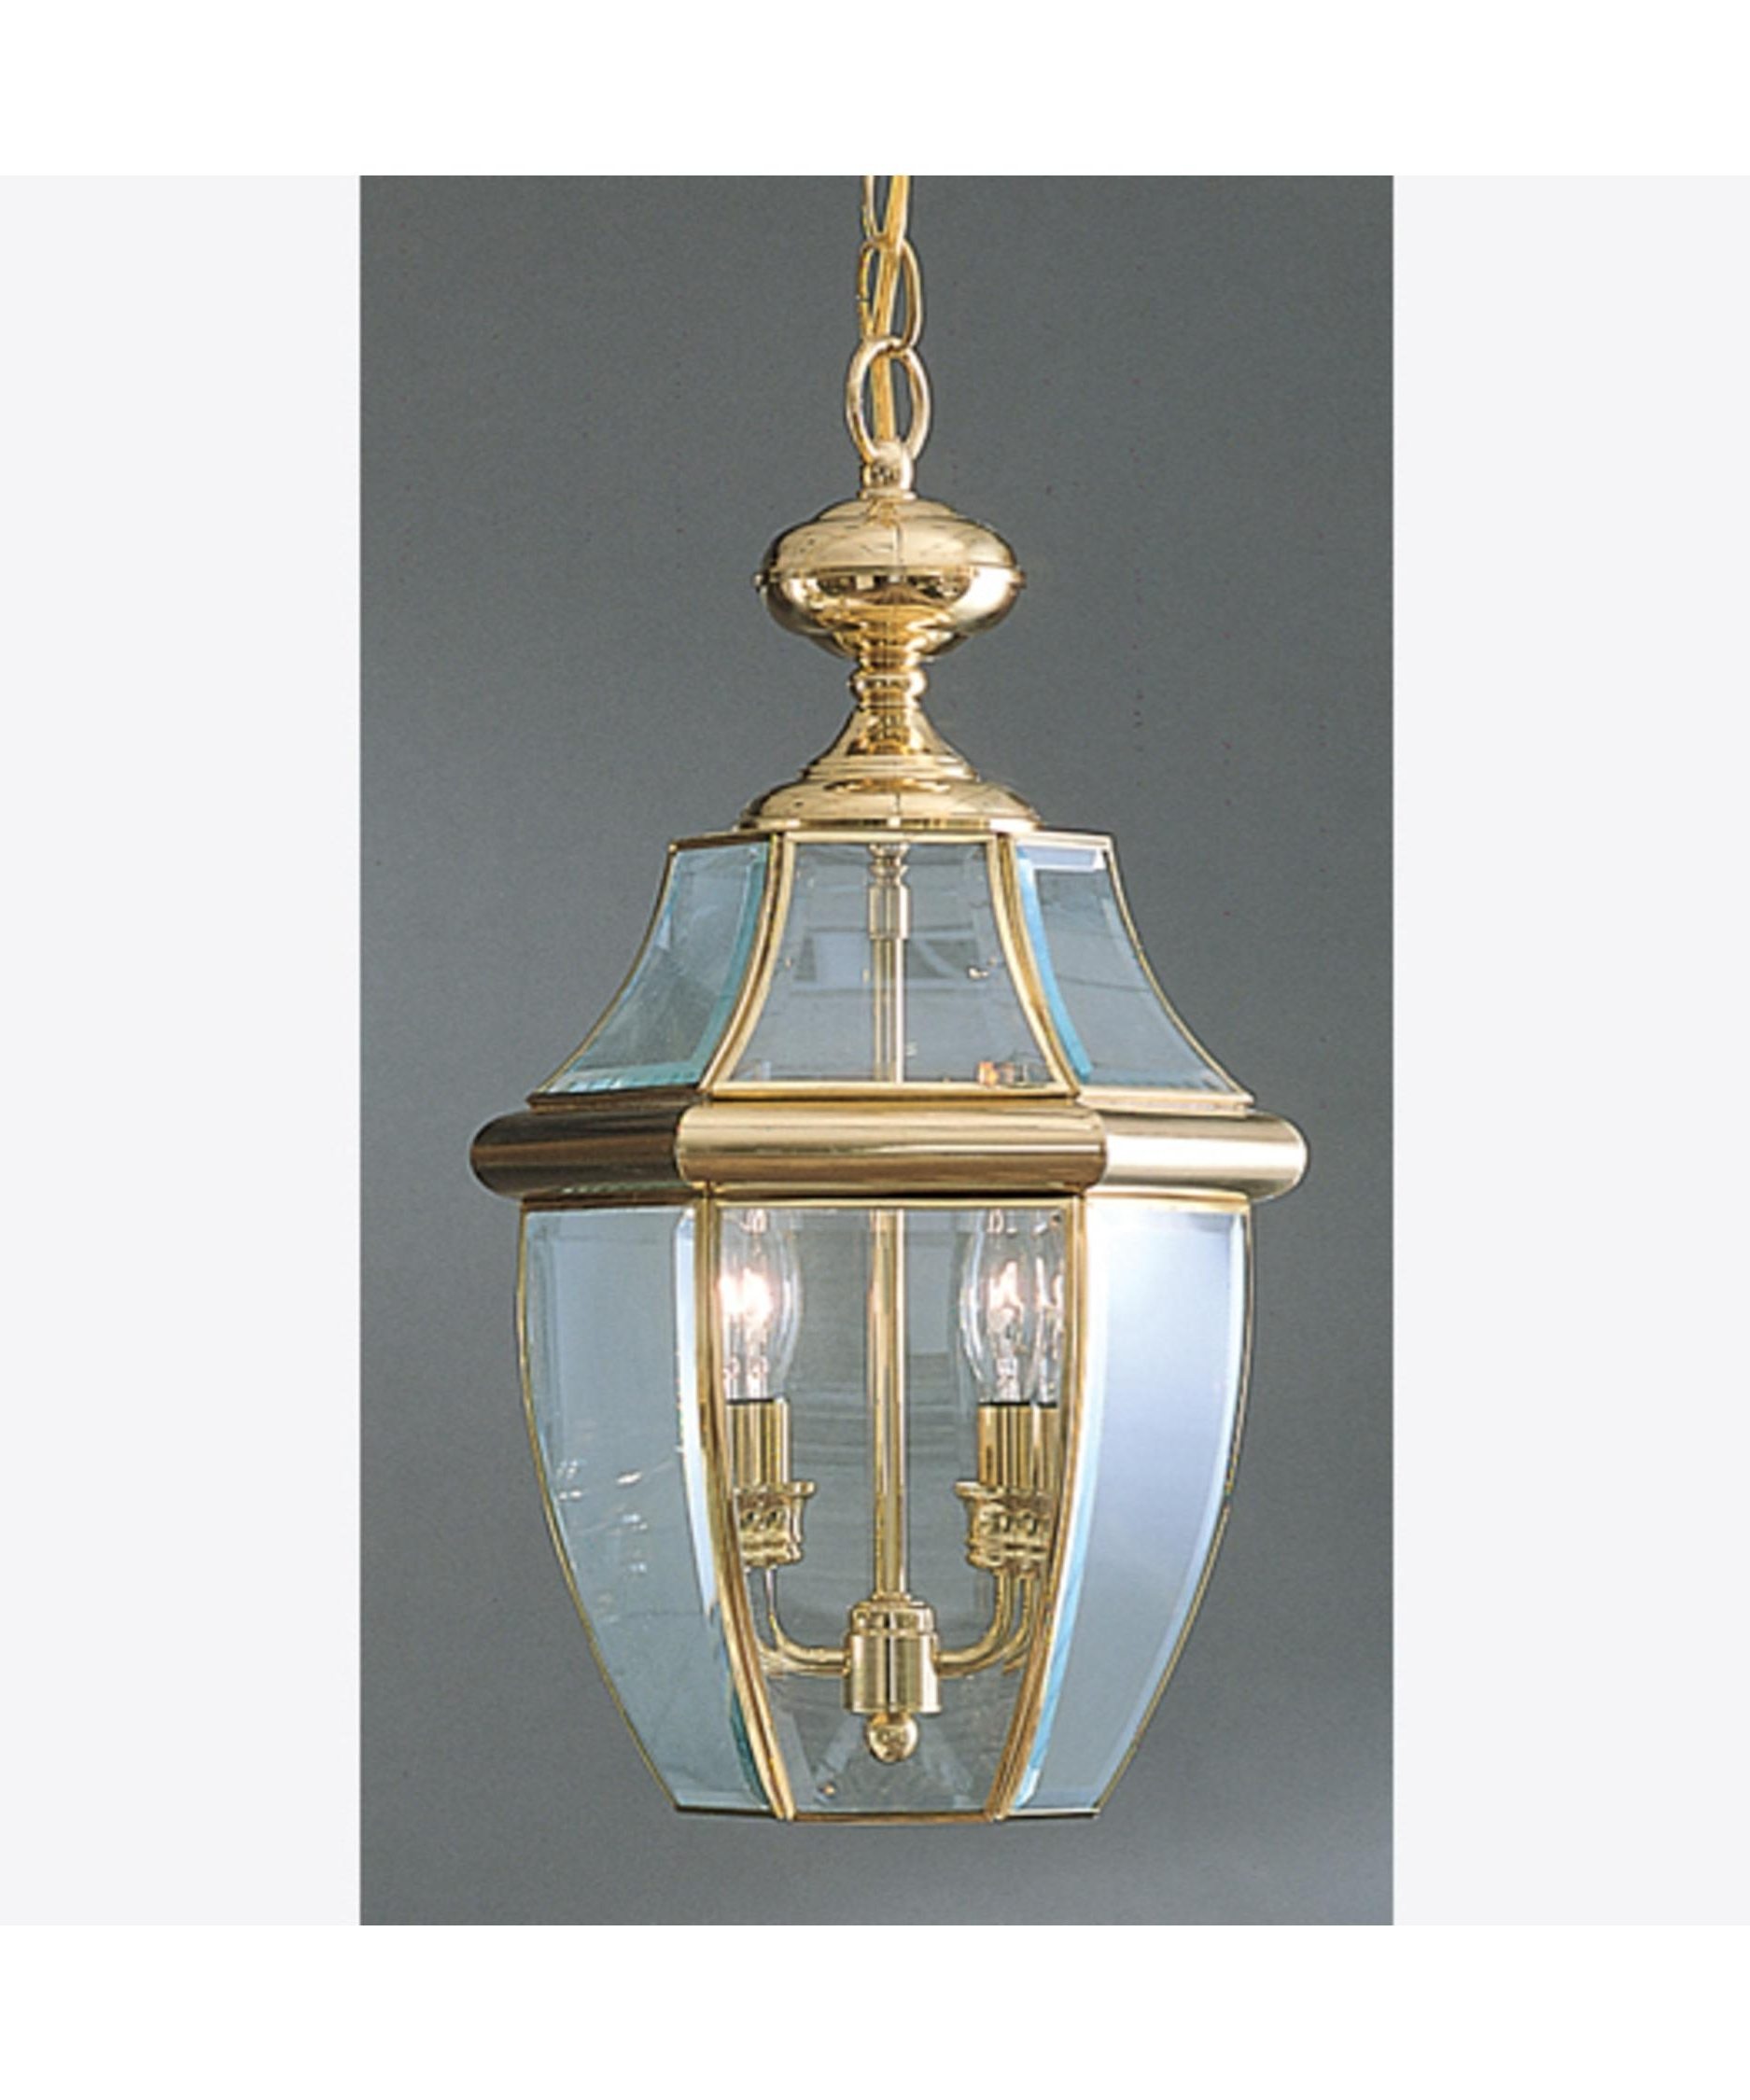 Outdoor Hanging Porch Lights Throughout 2019 Quoizel Ny1178 Newbury 10 Inch Wide 2 Light Outdoor Hanging Lantern (View 20 of 20)